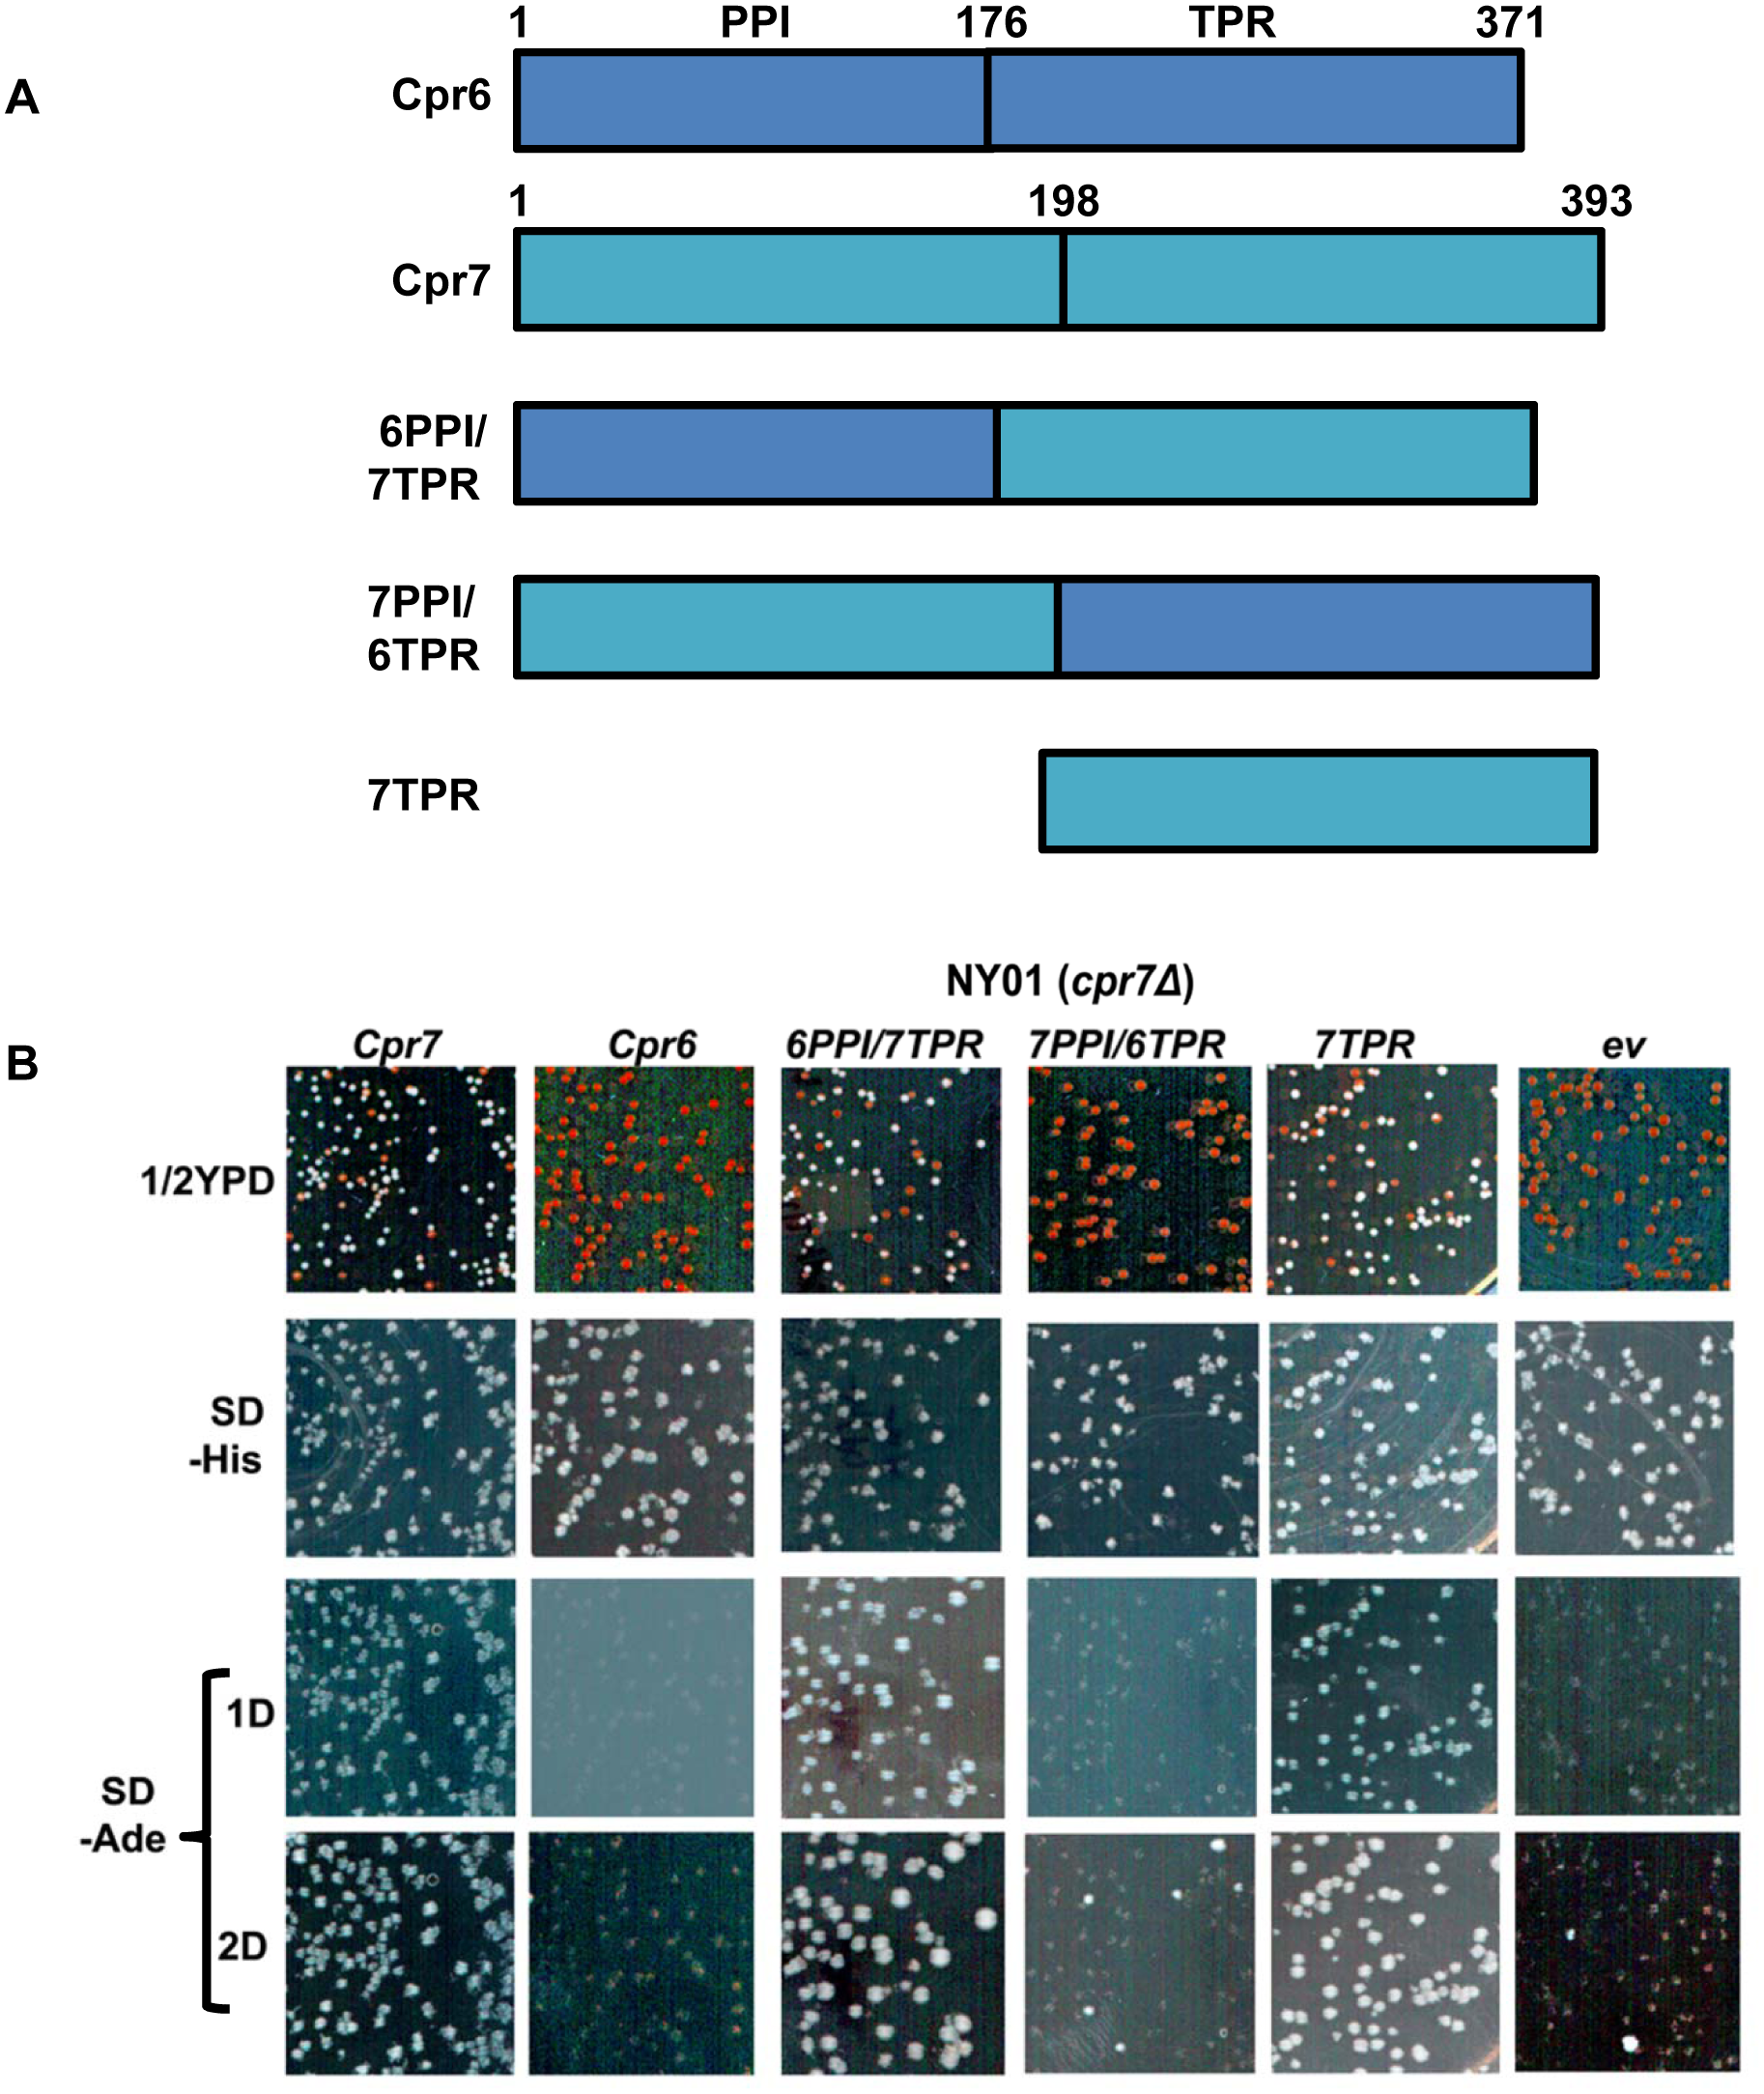 Cpr7 tetratricopeptide domain is important for [URE3] prion propagation.